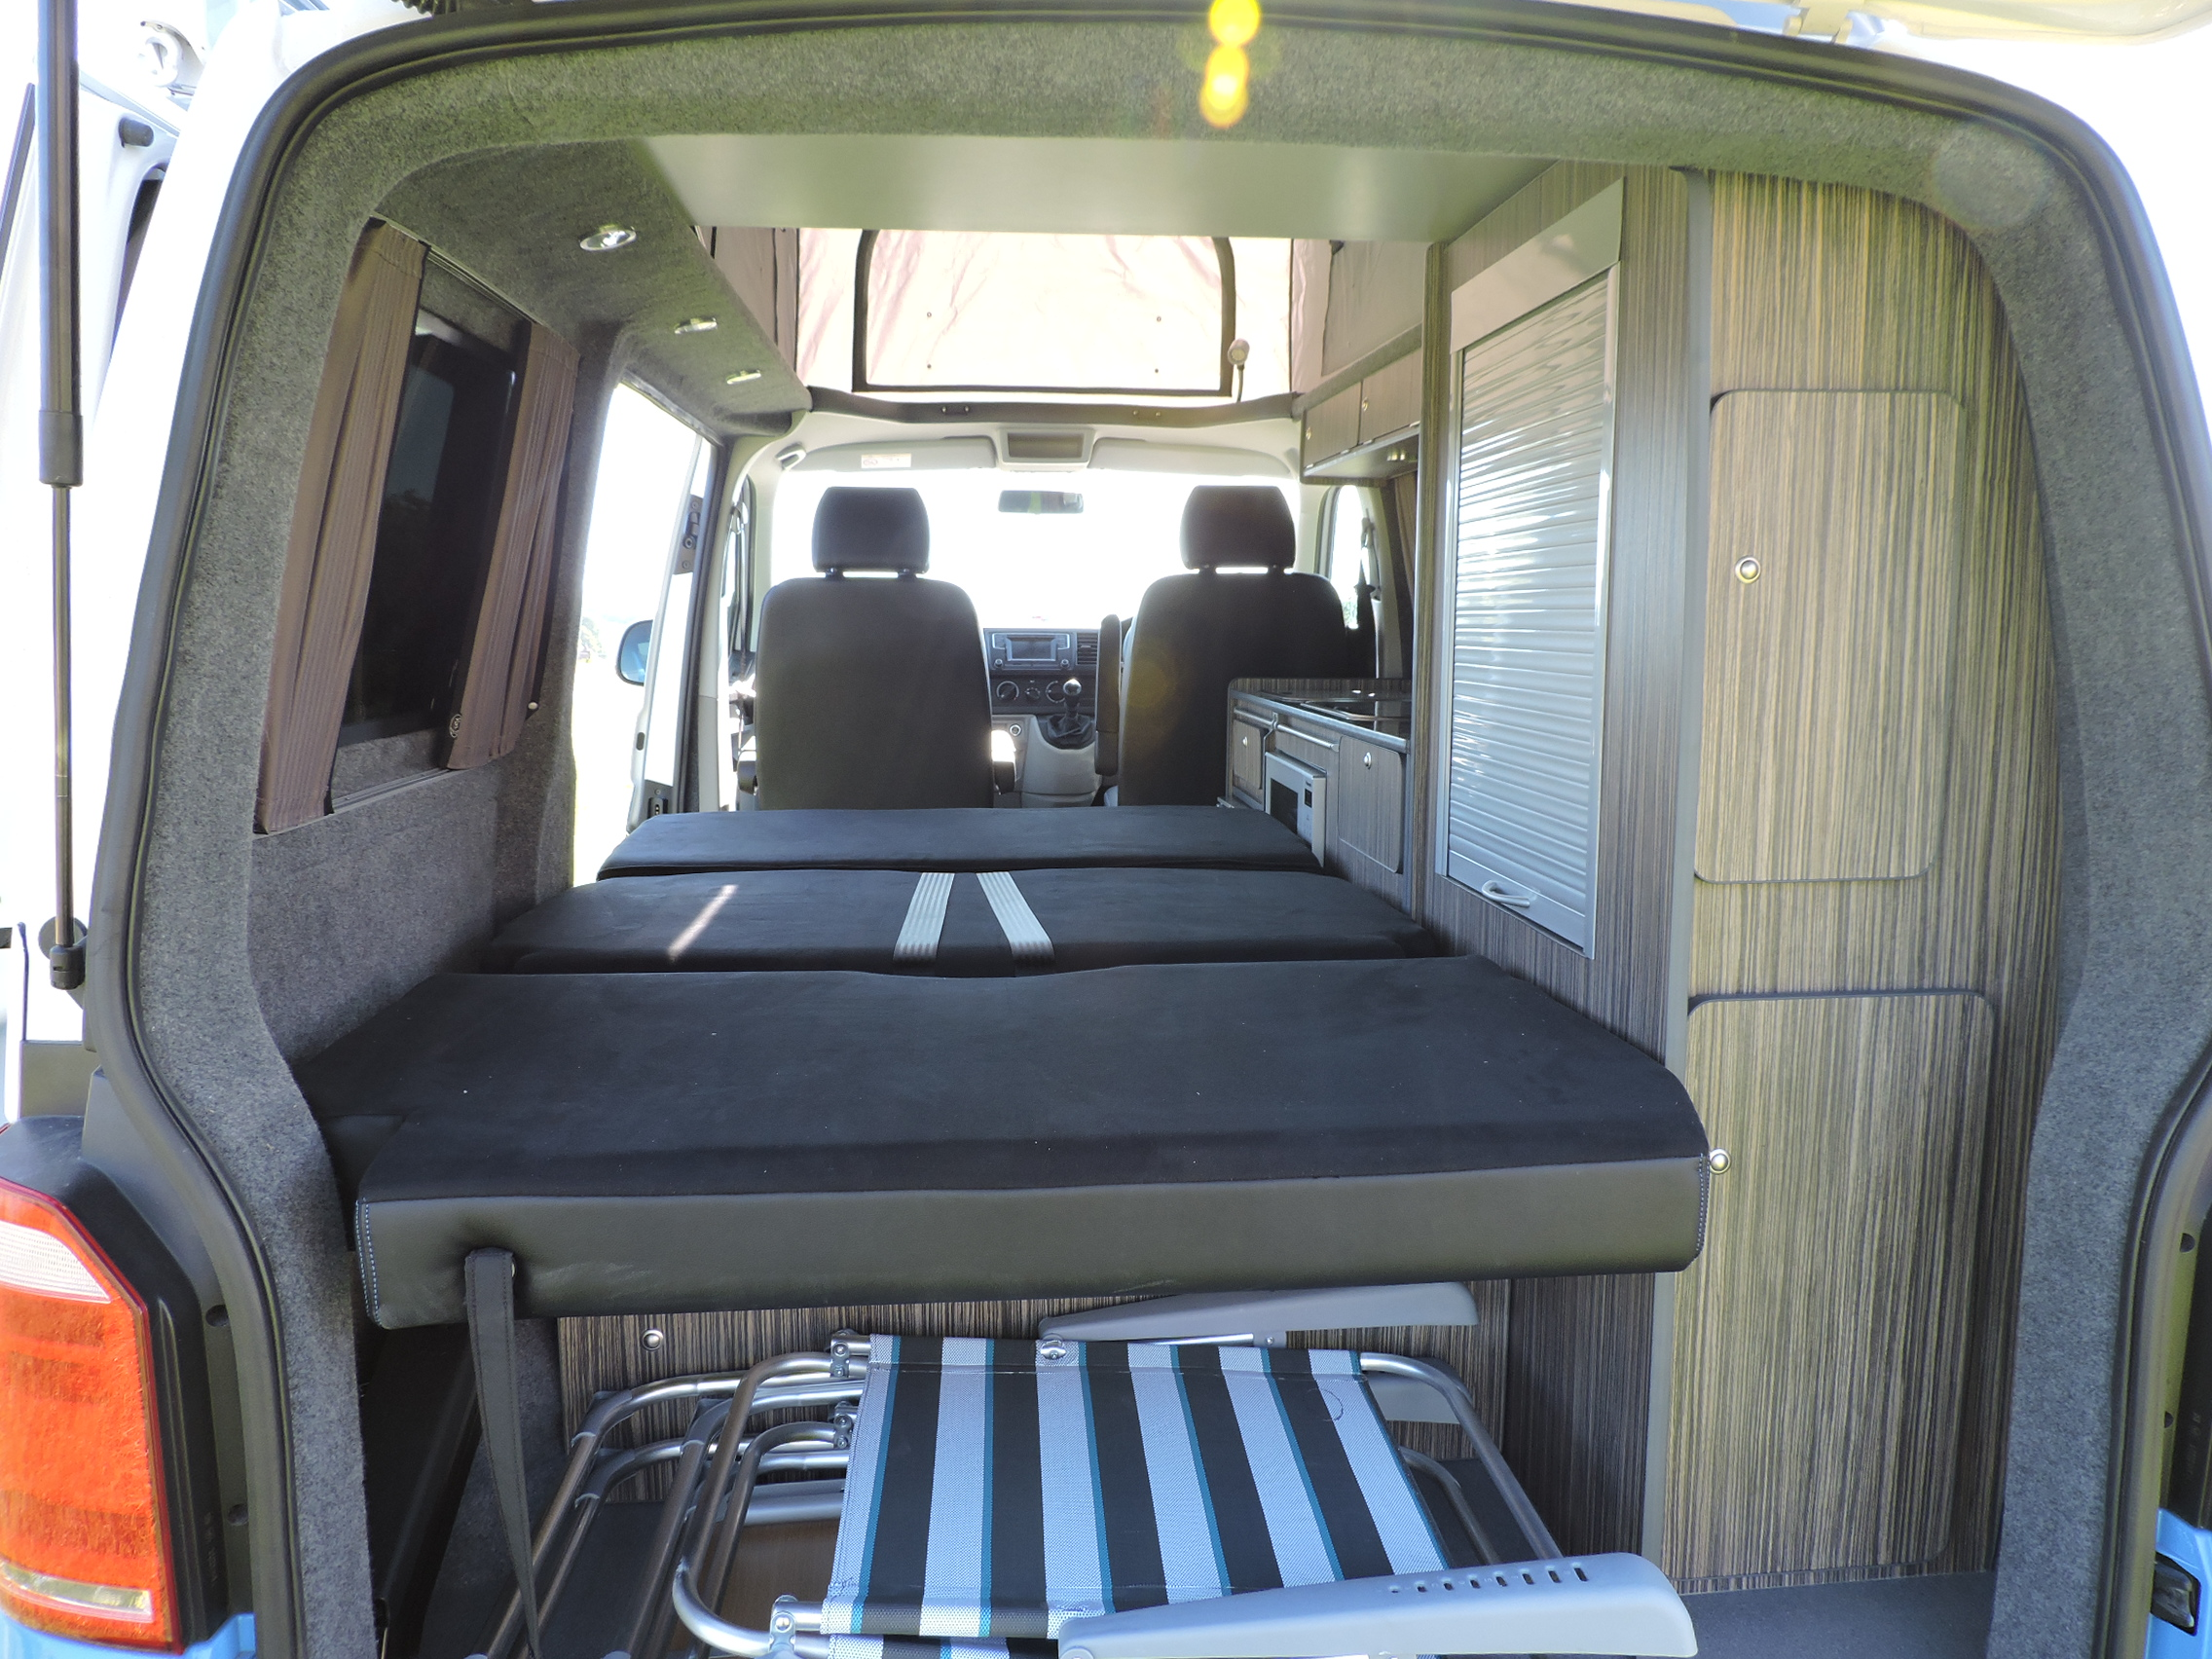 Campervan double bed